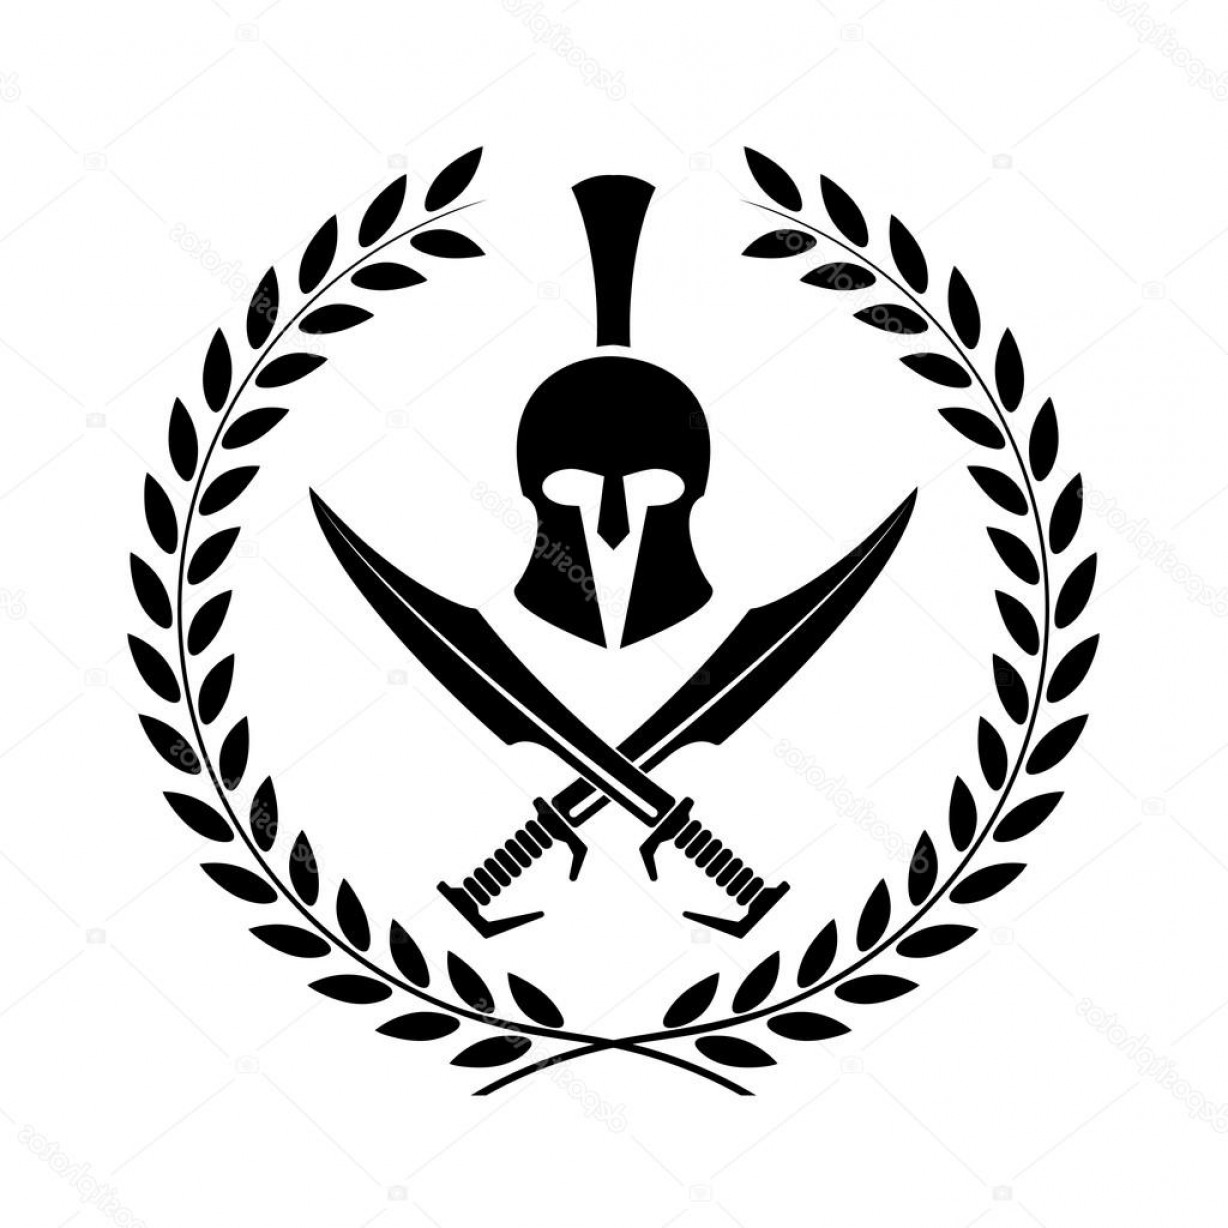 Warrior Vector Art: Stock Illustration Spartan Helmet Icon Symbol Of